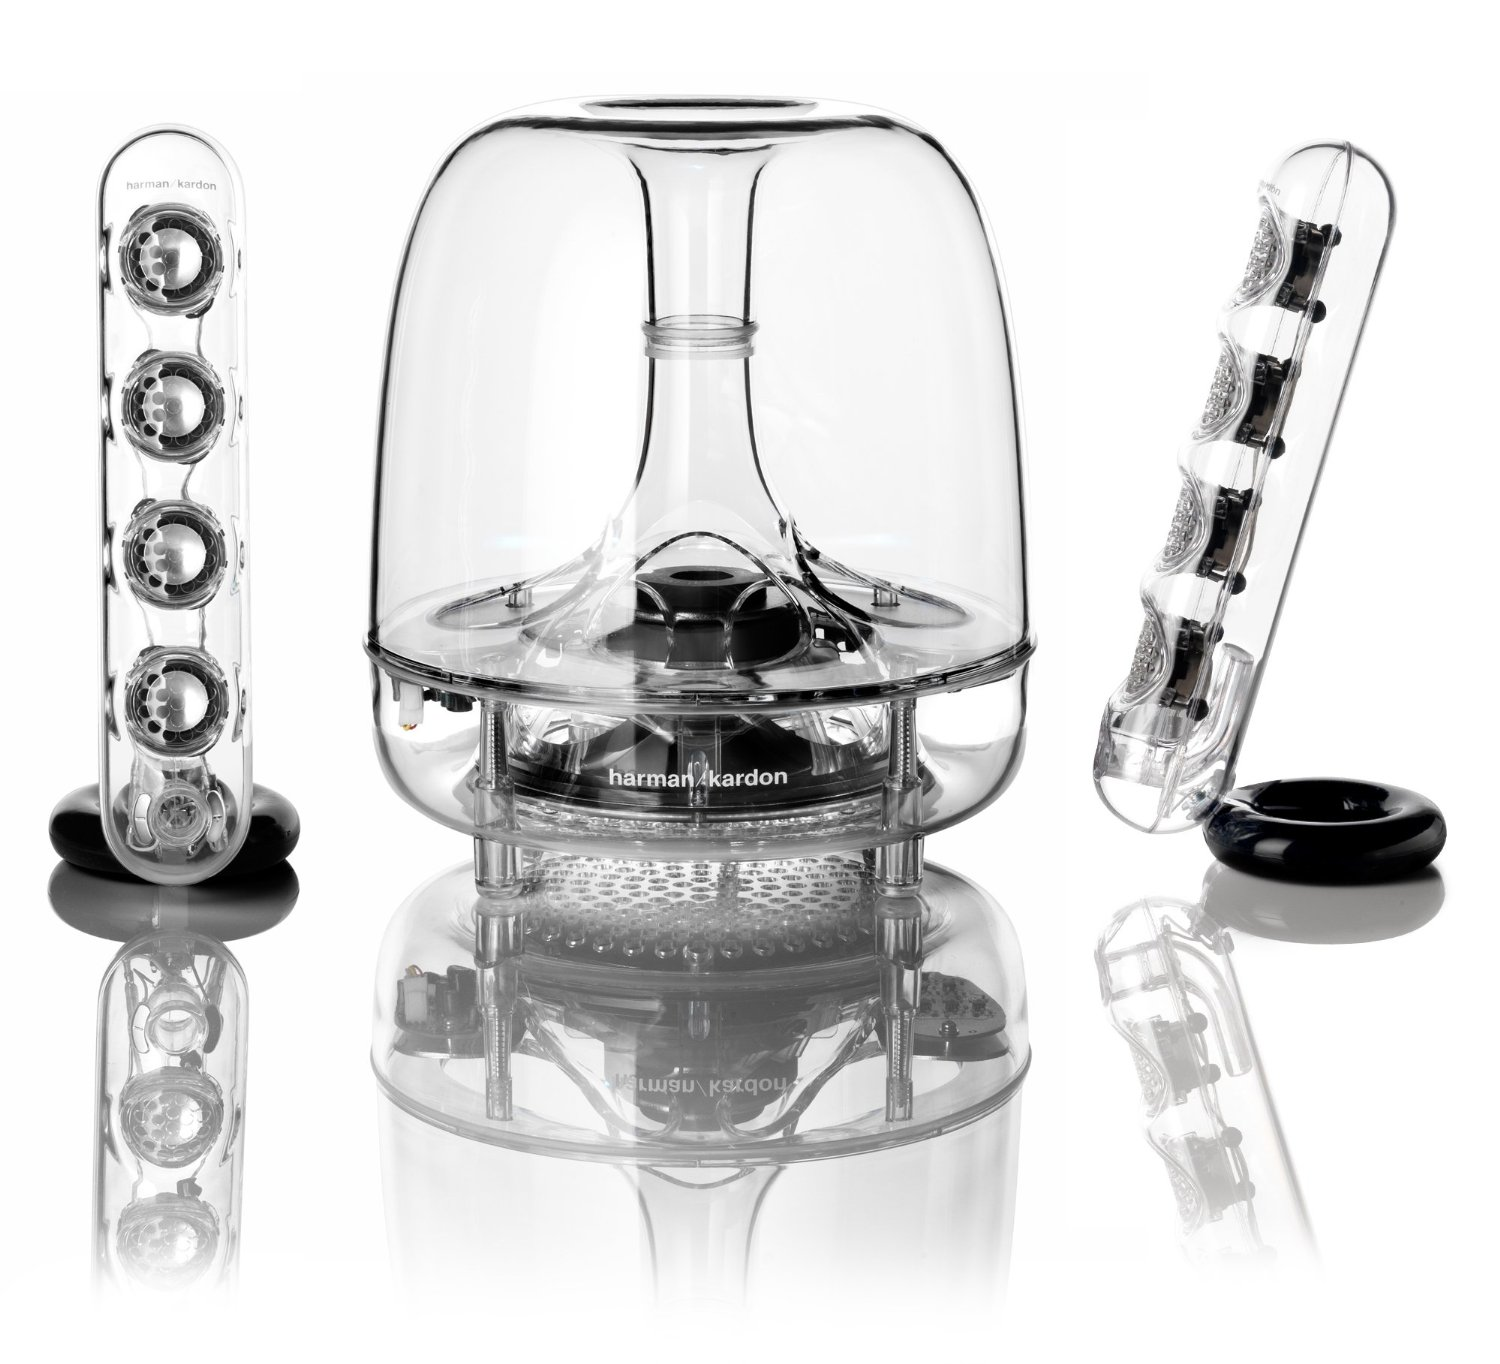 Harman Kardon SoundSticks Wireless Bluetooth Enabled 2.1 Speaker System by Harman